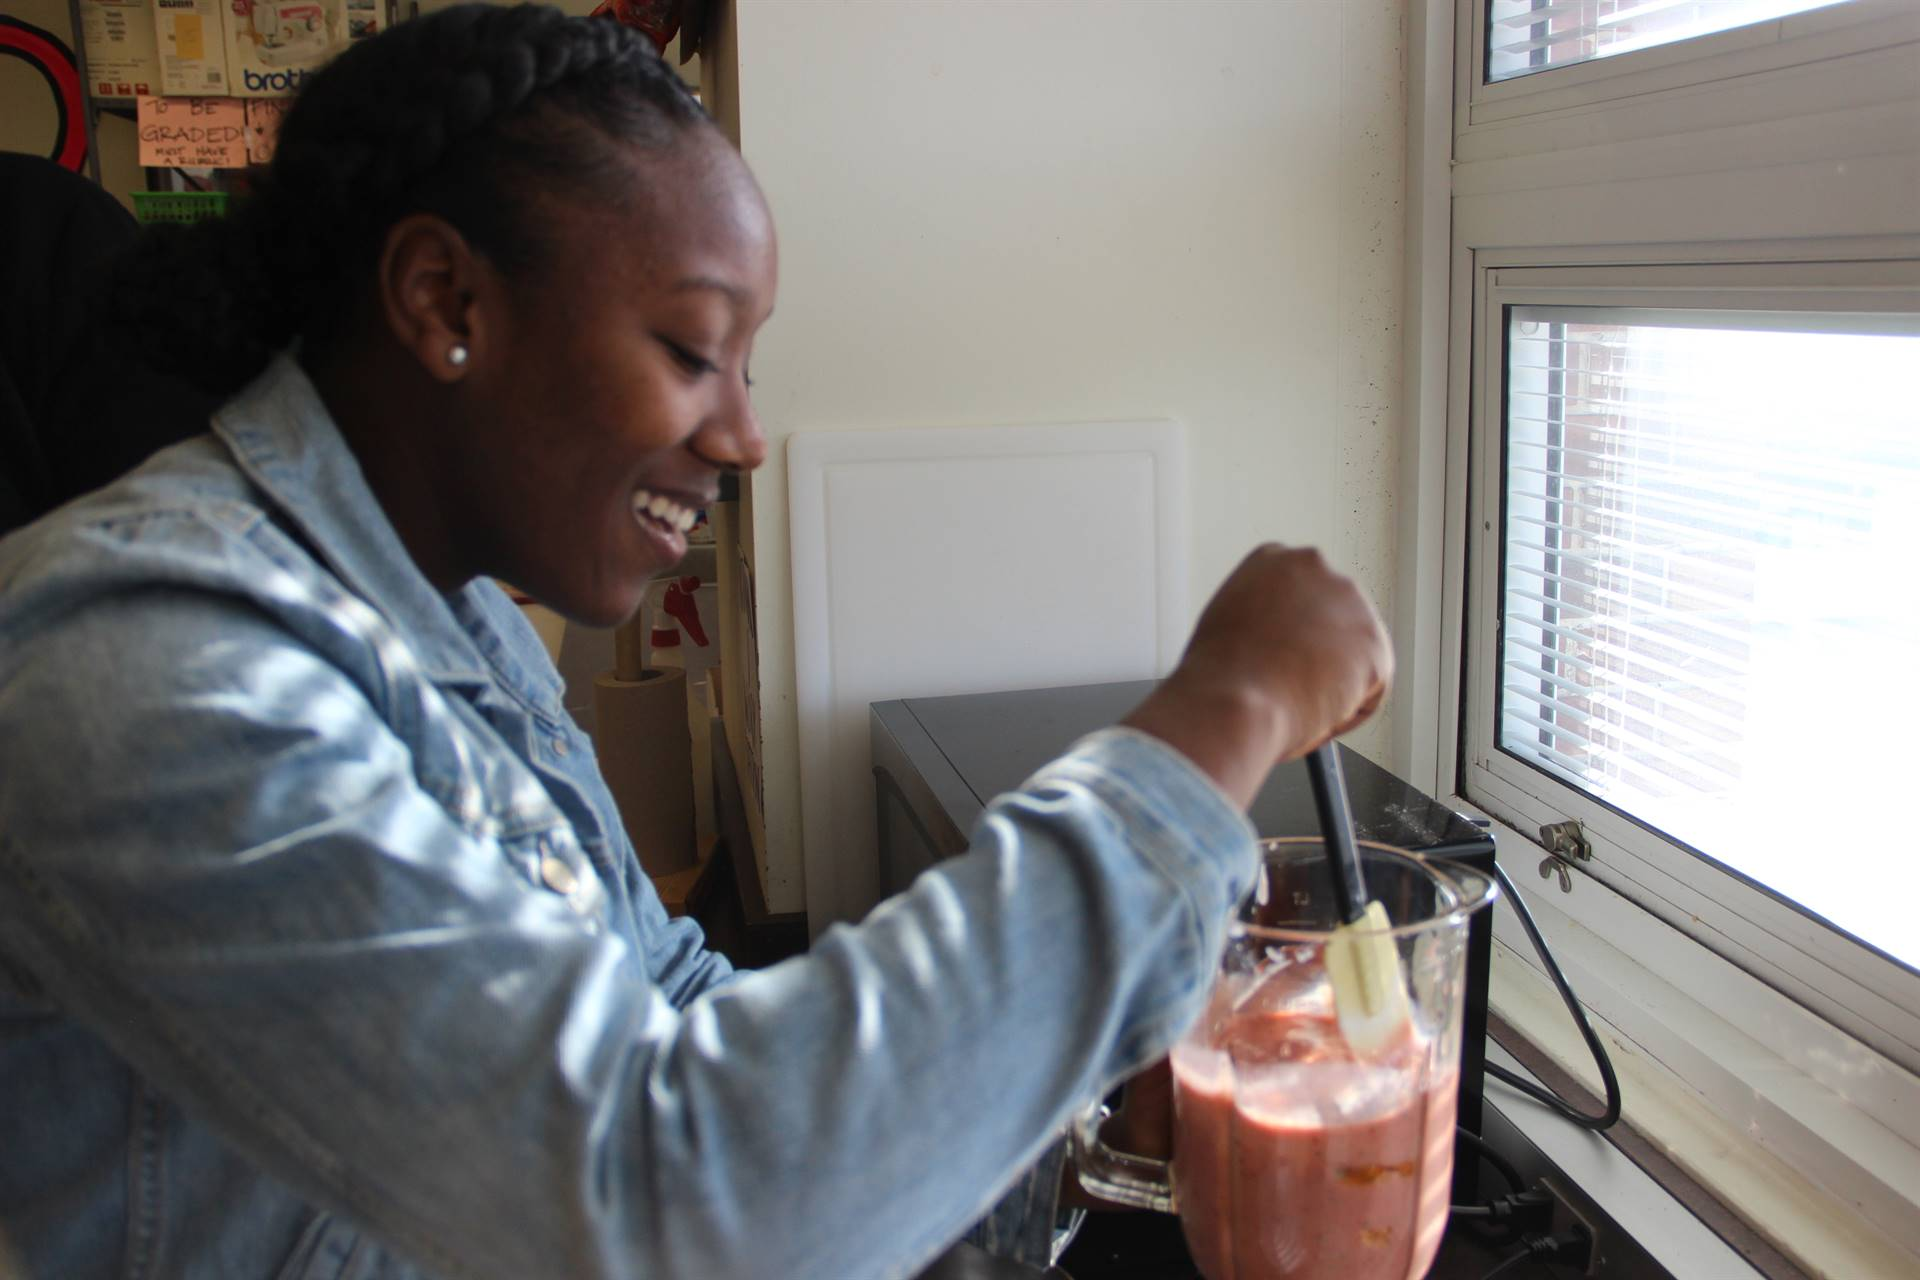 Food Tech making smoothies